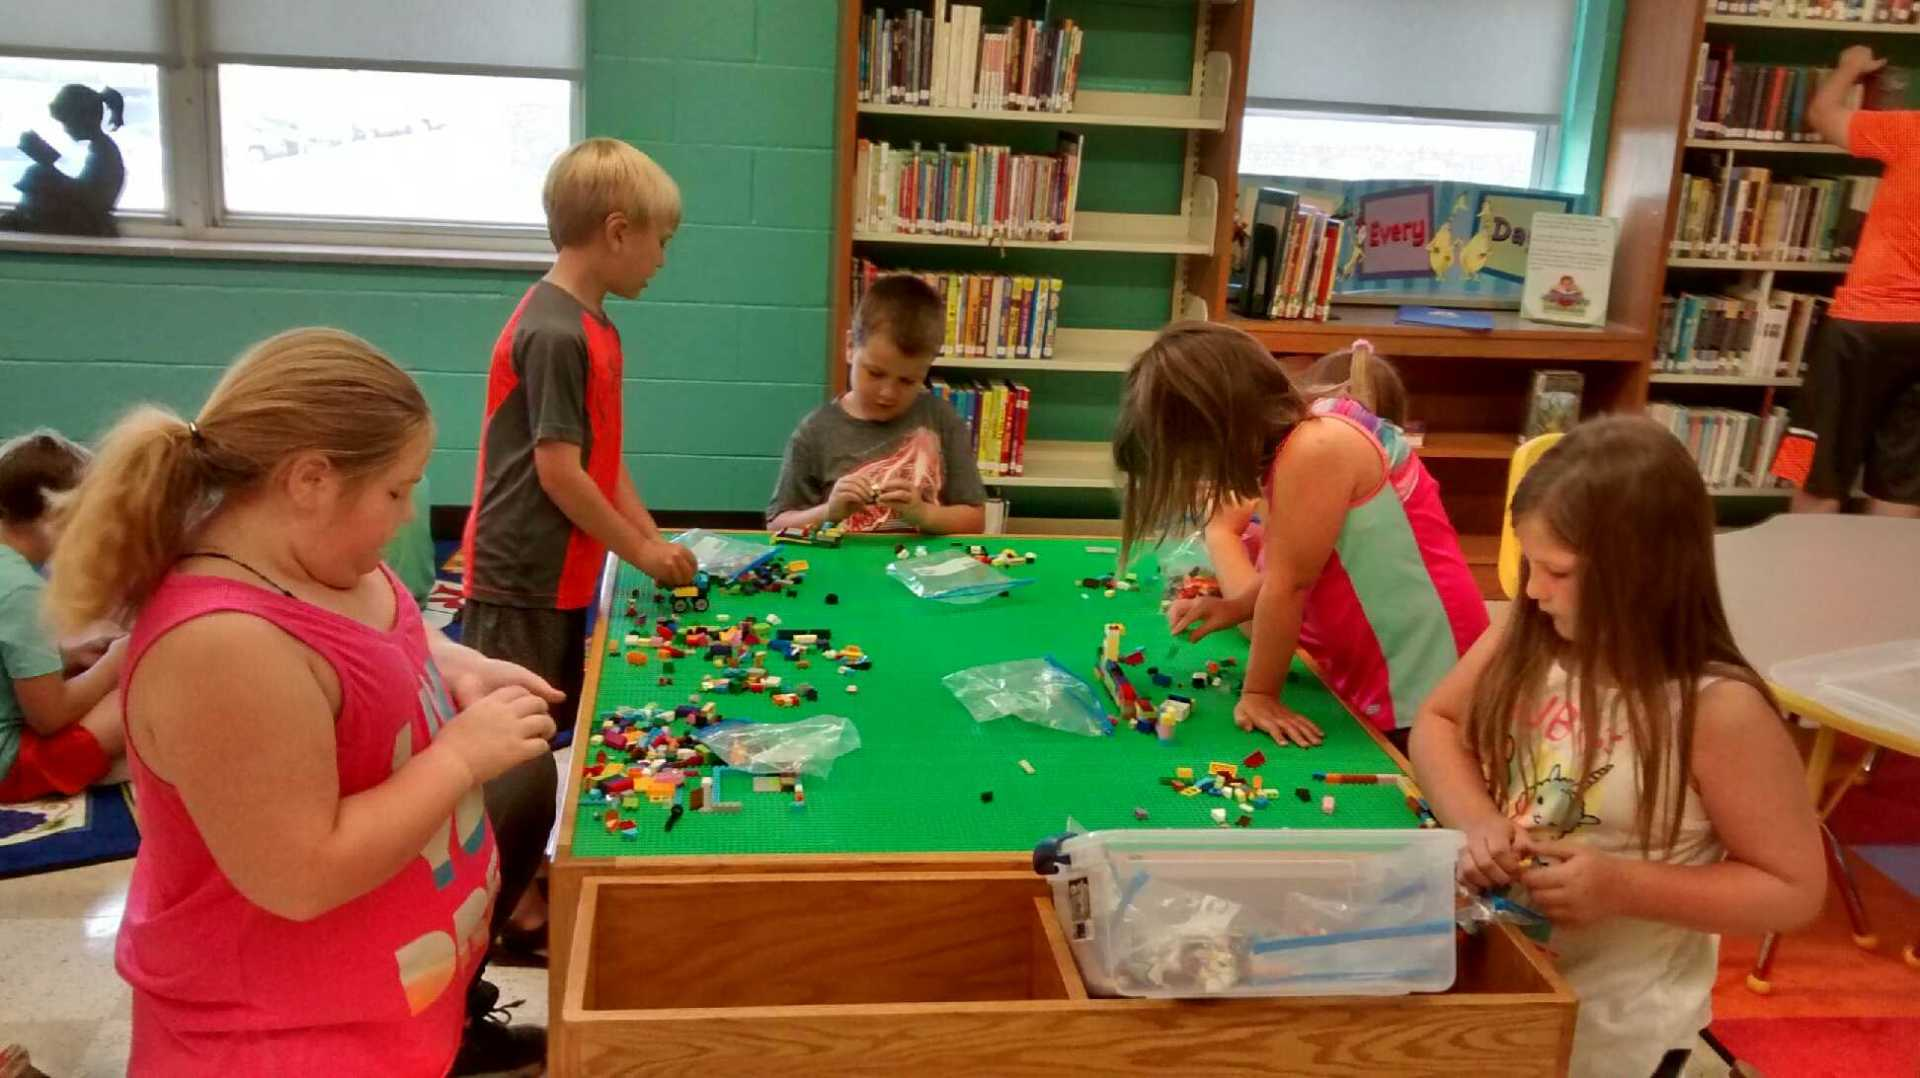 Morning campers take a break to build on our Lego table.